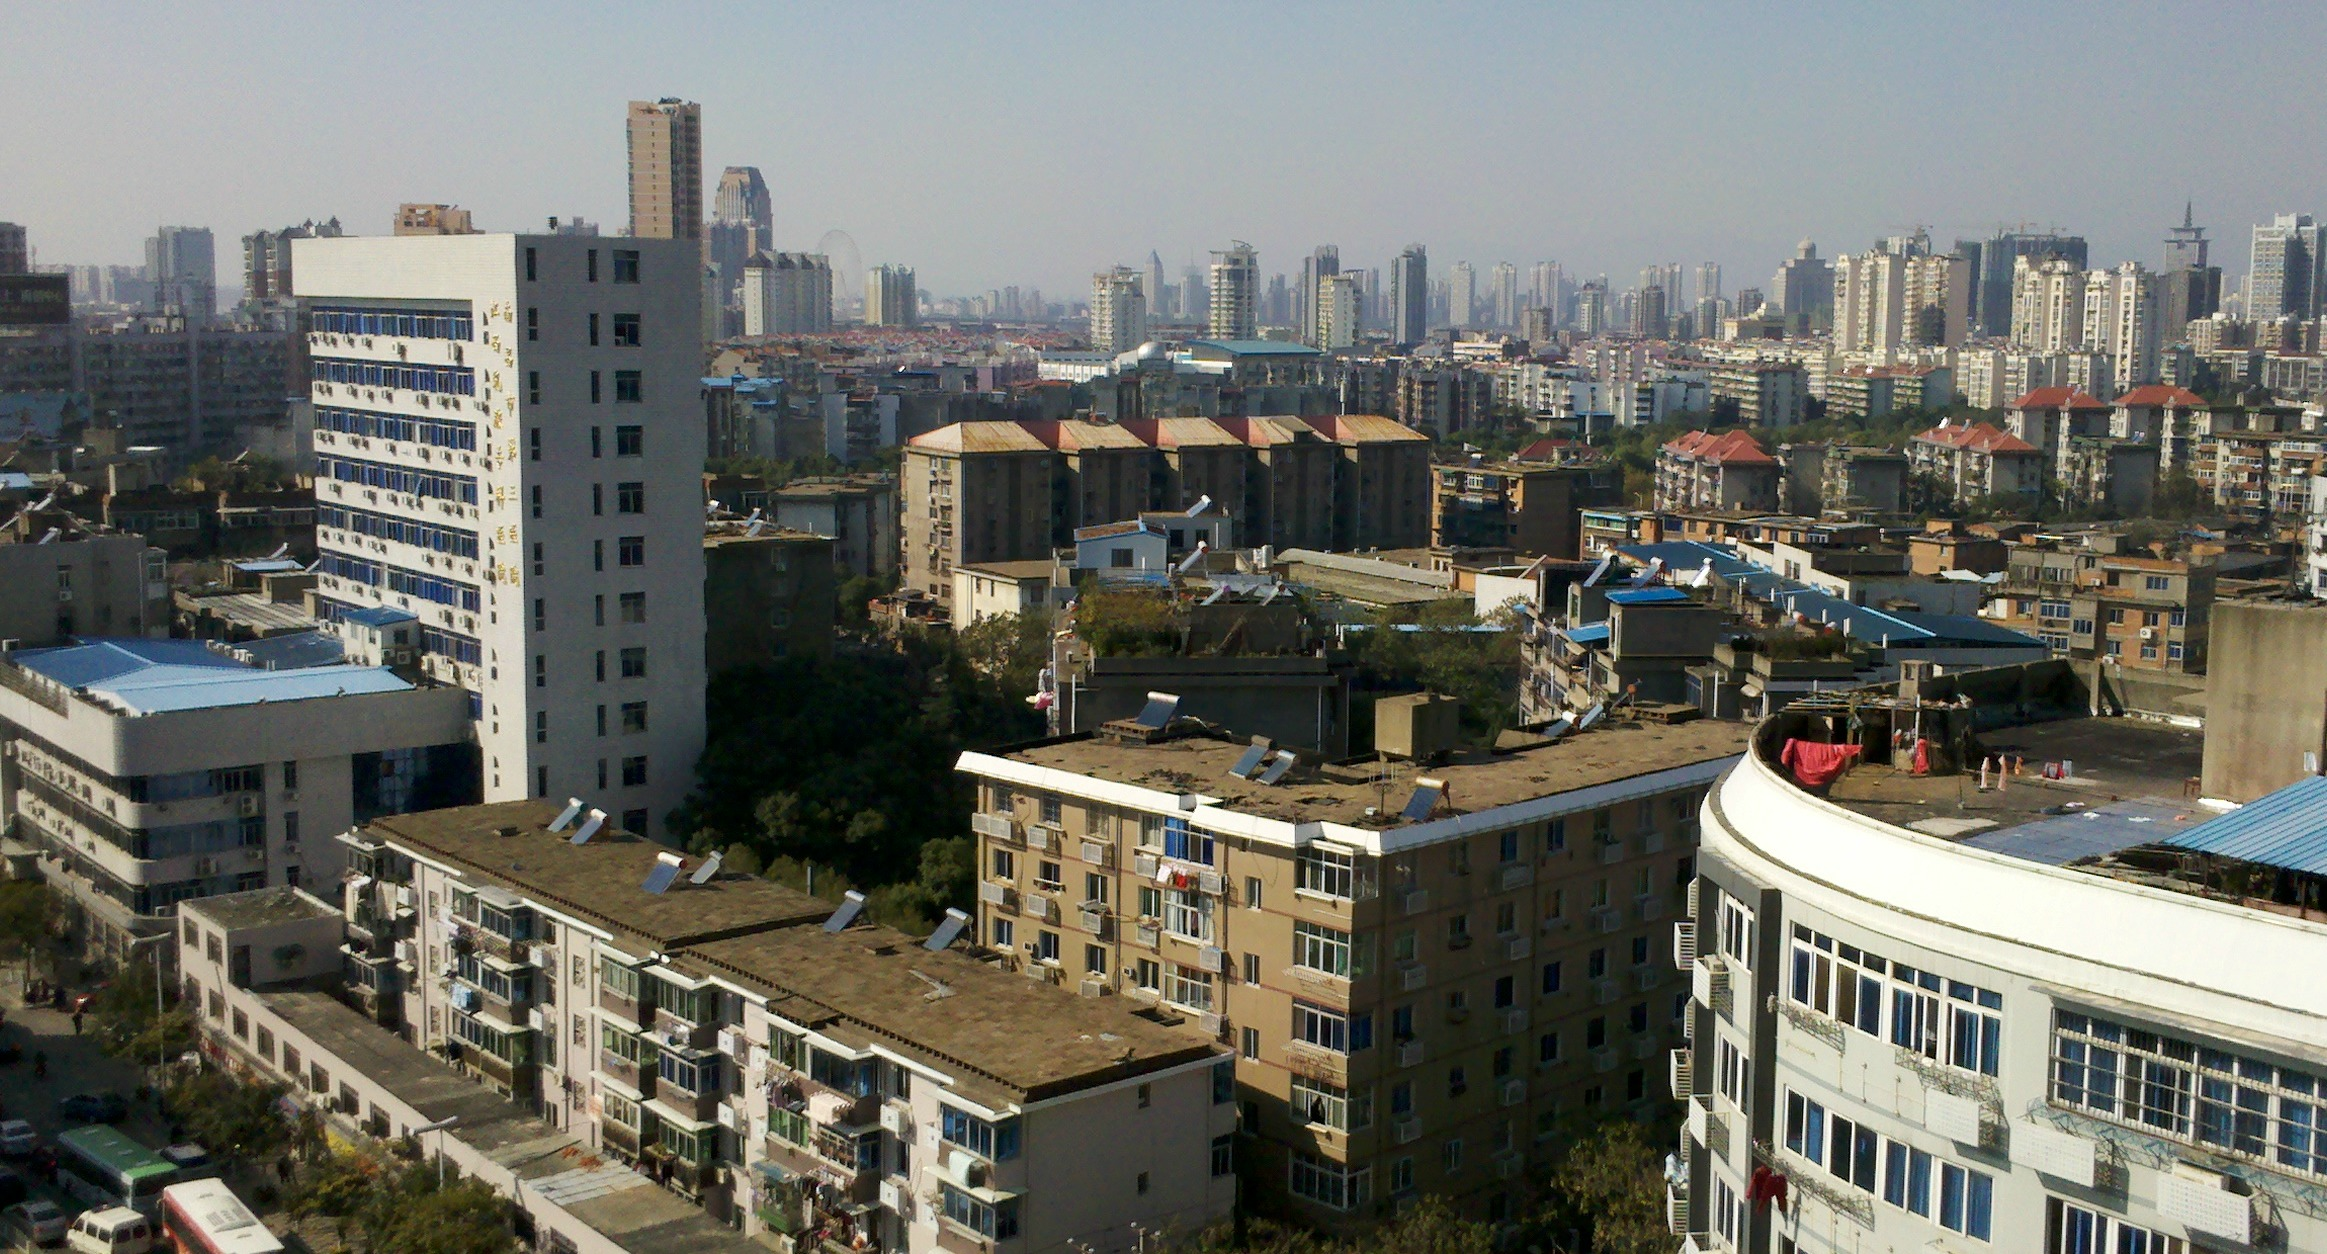 Nanchang China  city pictures gallery : Heure exacte Nanchang, République Populaire de Chine ...